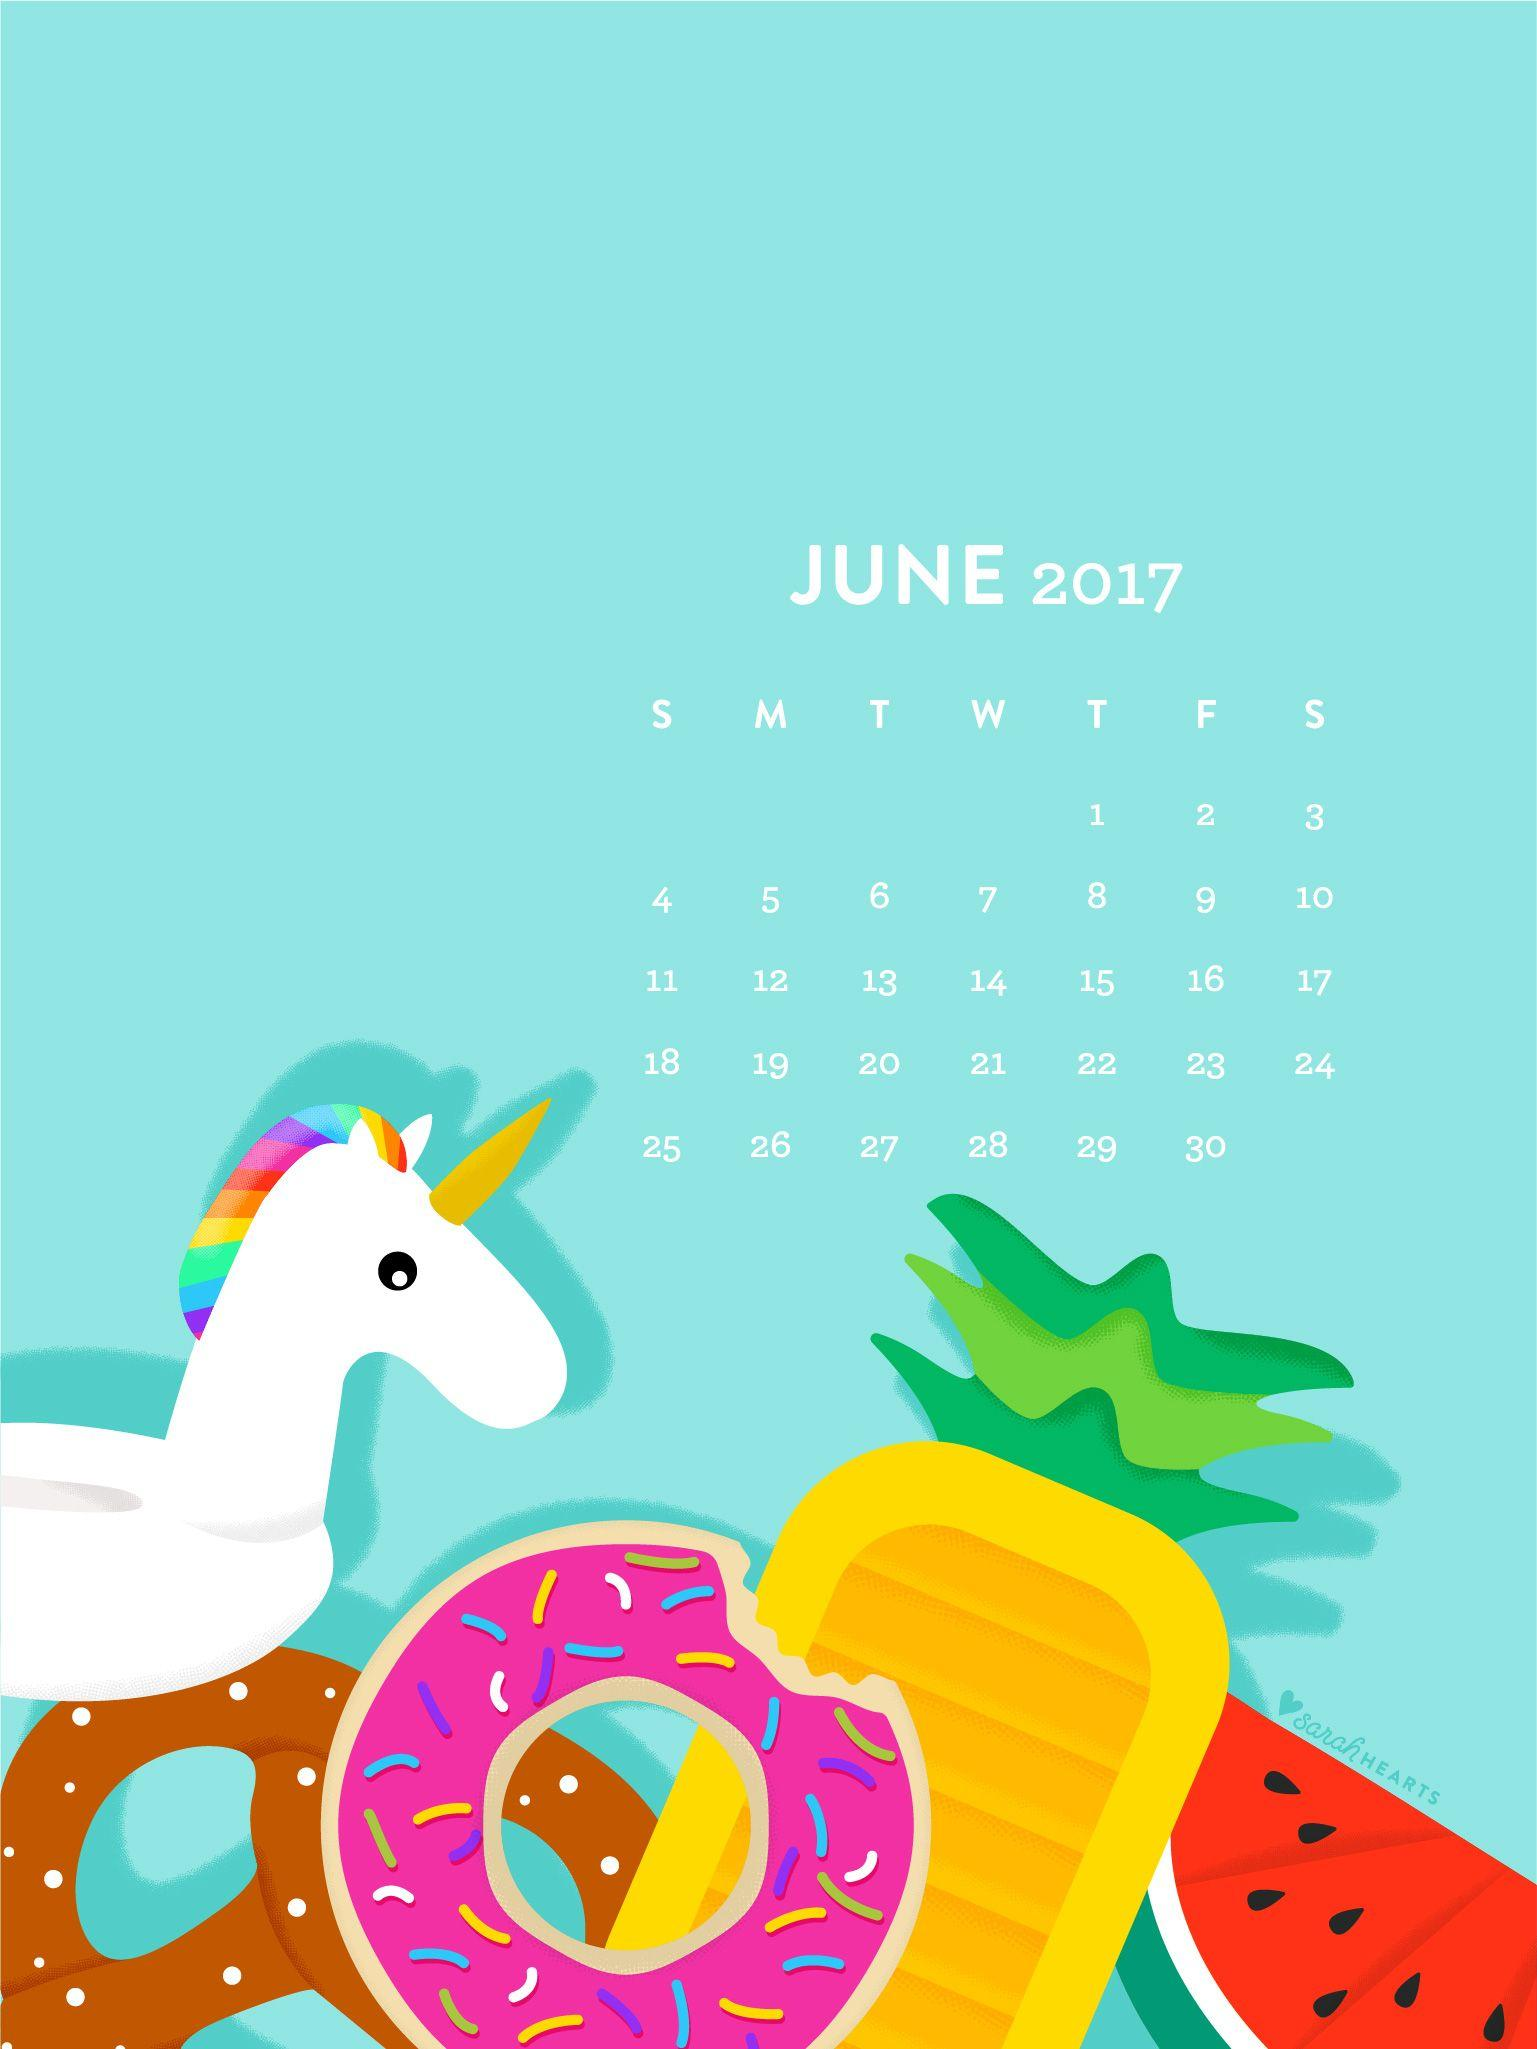 June 2017 Wallpapers High Quality Is Cool Wallpapers